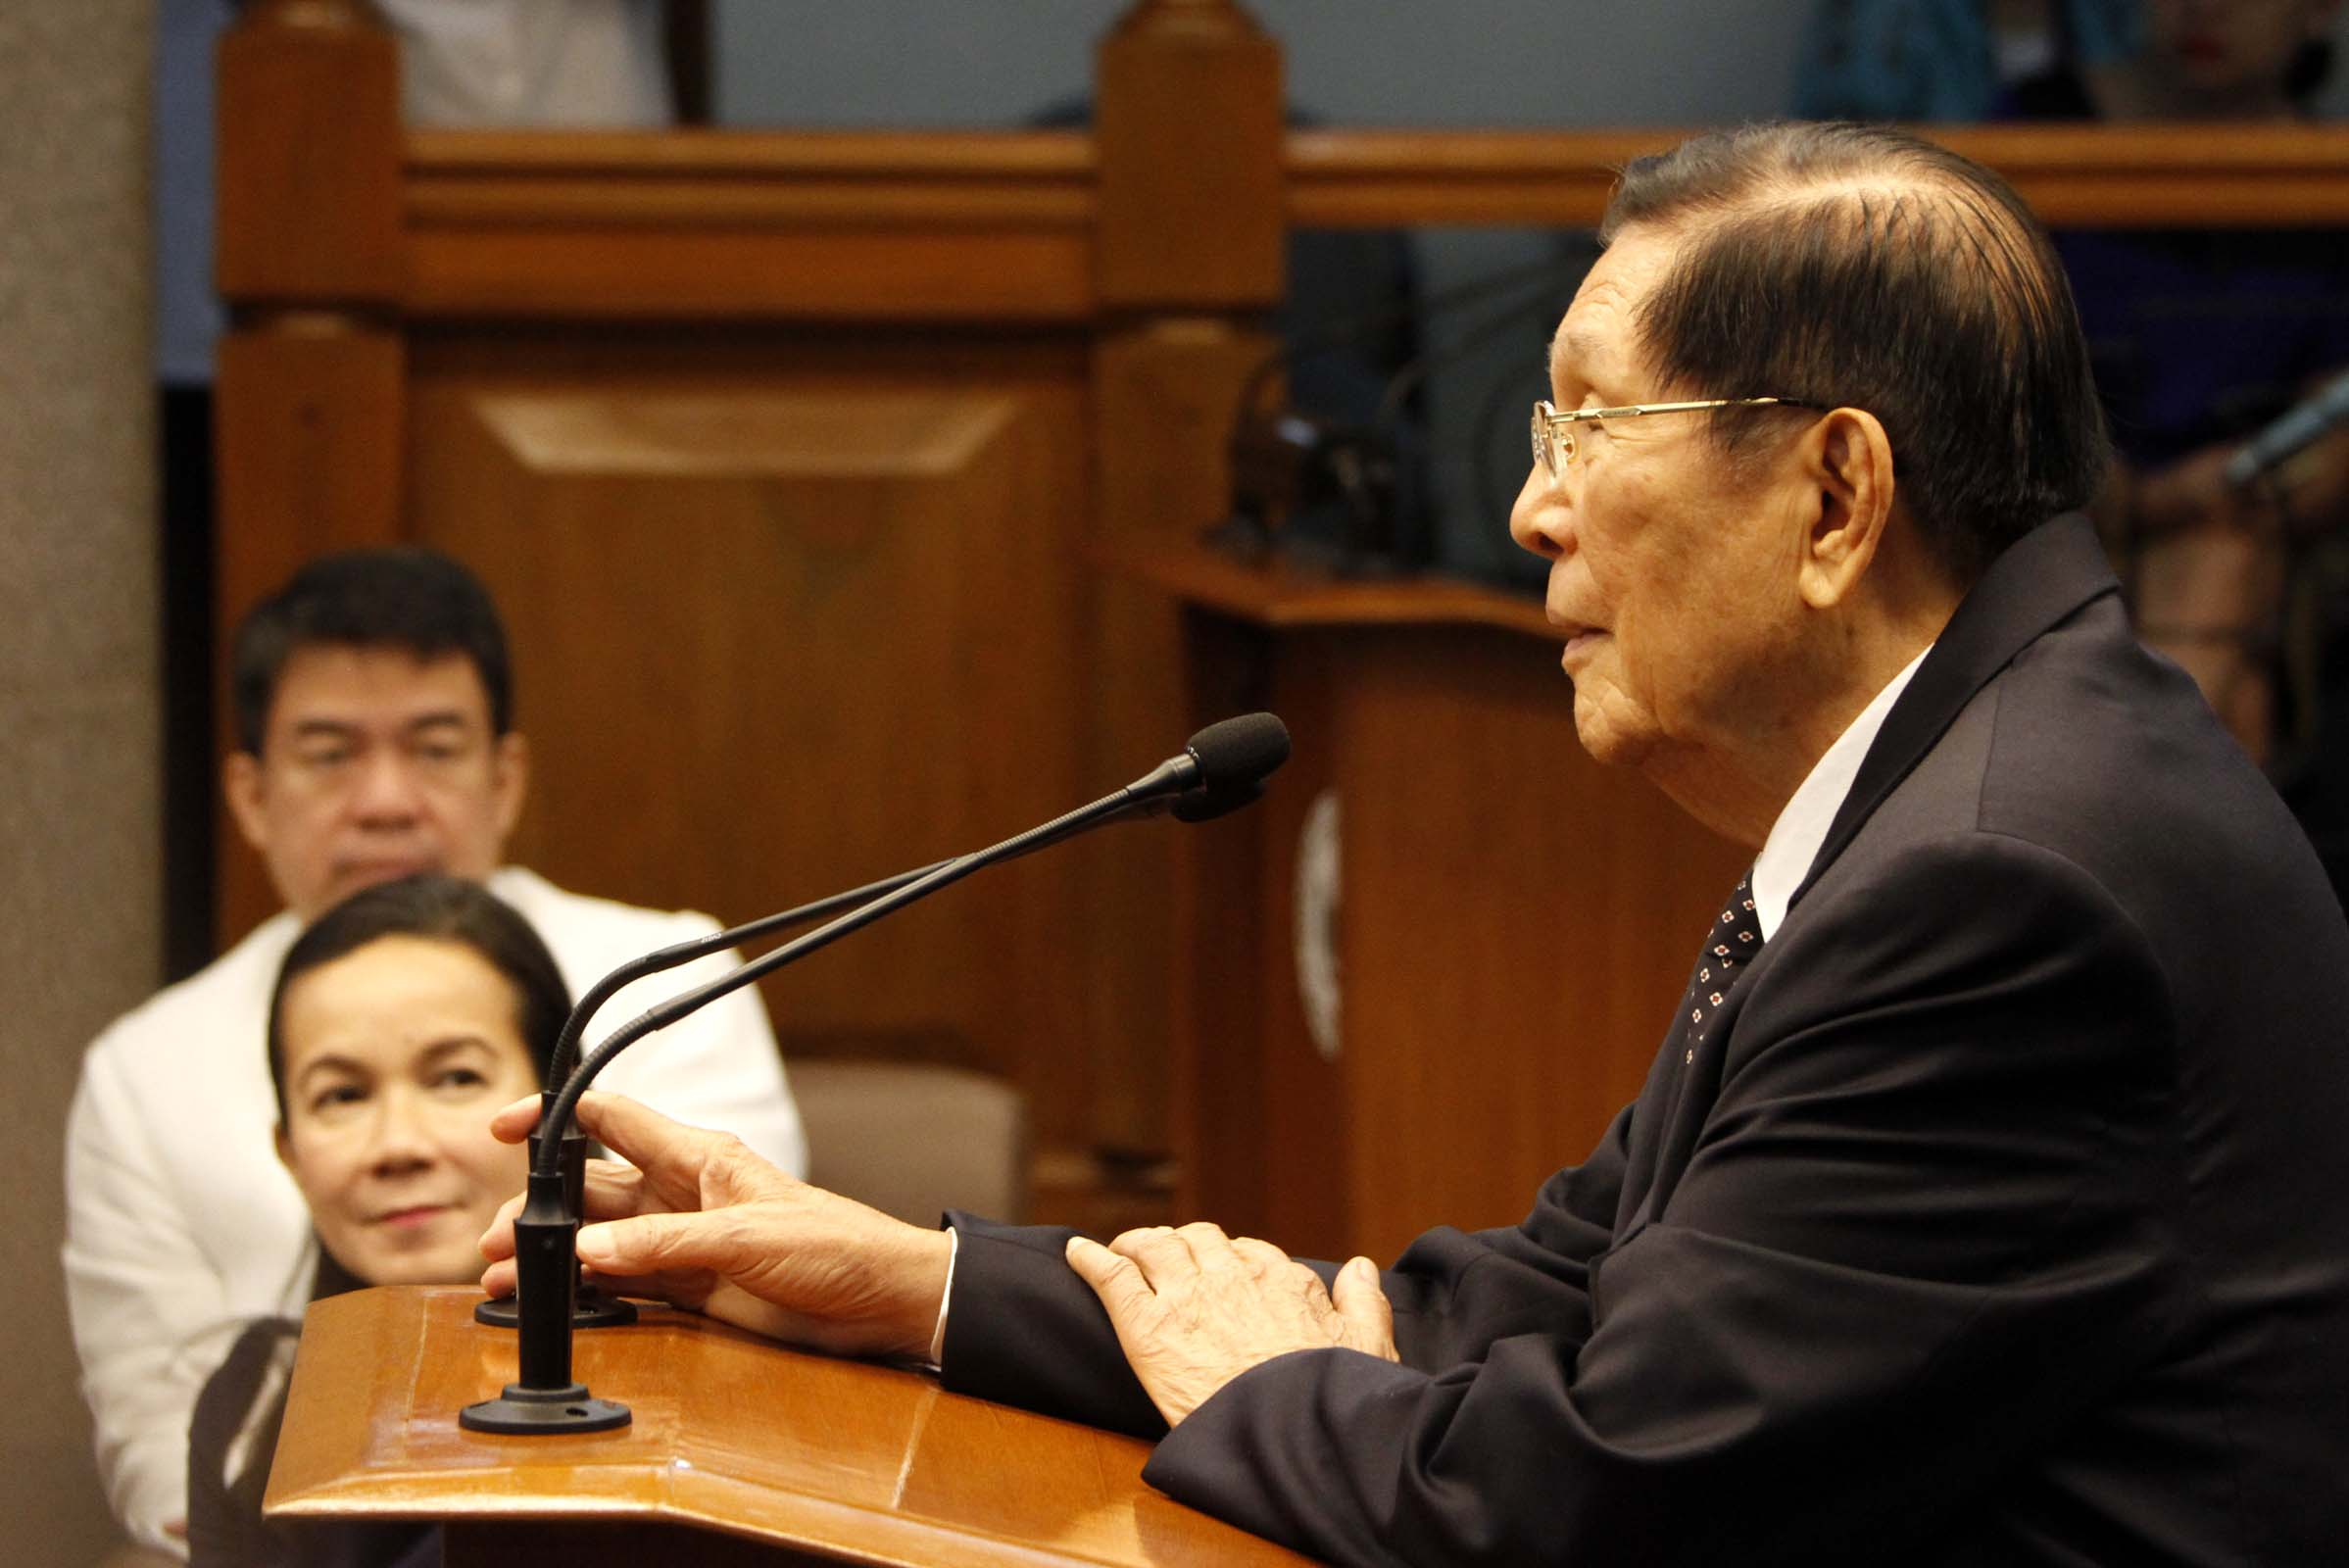 Senate Minority Leader Juan Ponce Enrile thanks his colleagues in his valedictory speech on Monday  at the Senate Building in Pasay City. Enrile is retiring from government service after having served the country's Executive Department for 20 years where he served as Justice and Defense secretary, and 27 years in the Legislative Department with four terms in the Senate and three years in the House of Representatives. (Photo: Avito Dalan/PNA)